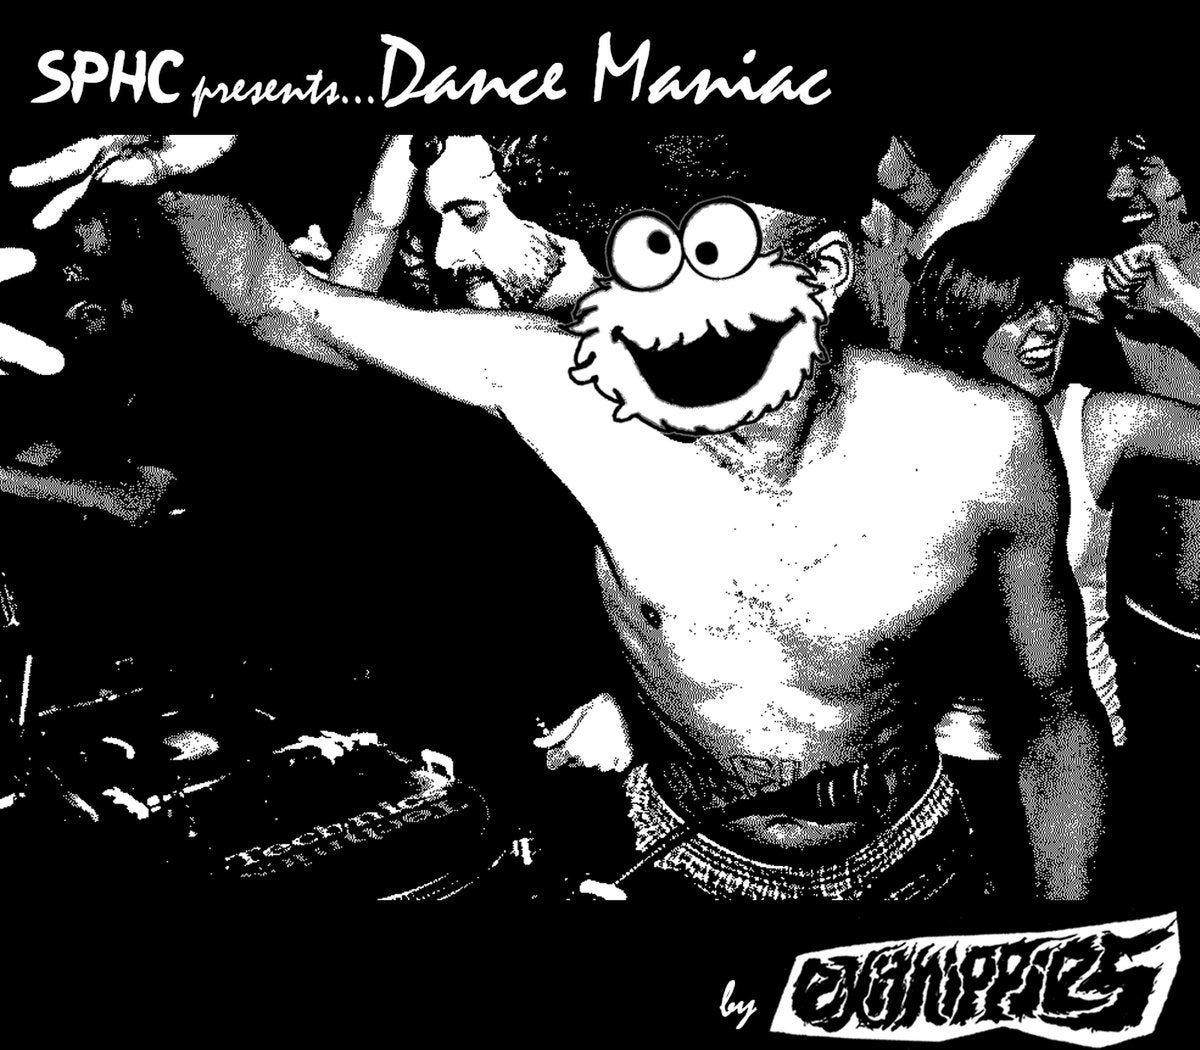 Exit Hippies - Dance Maniac LP